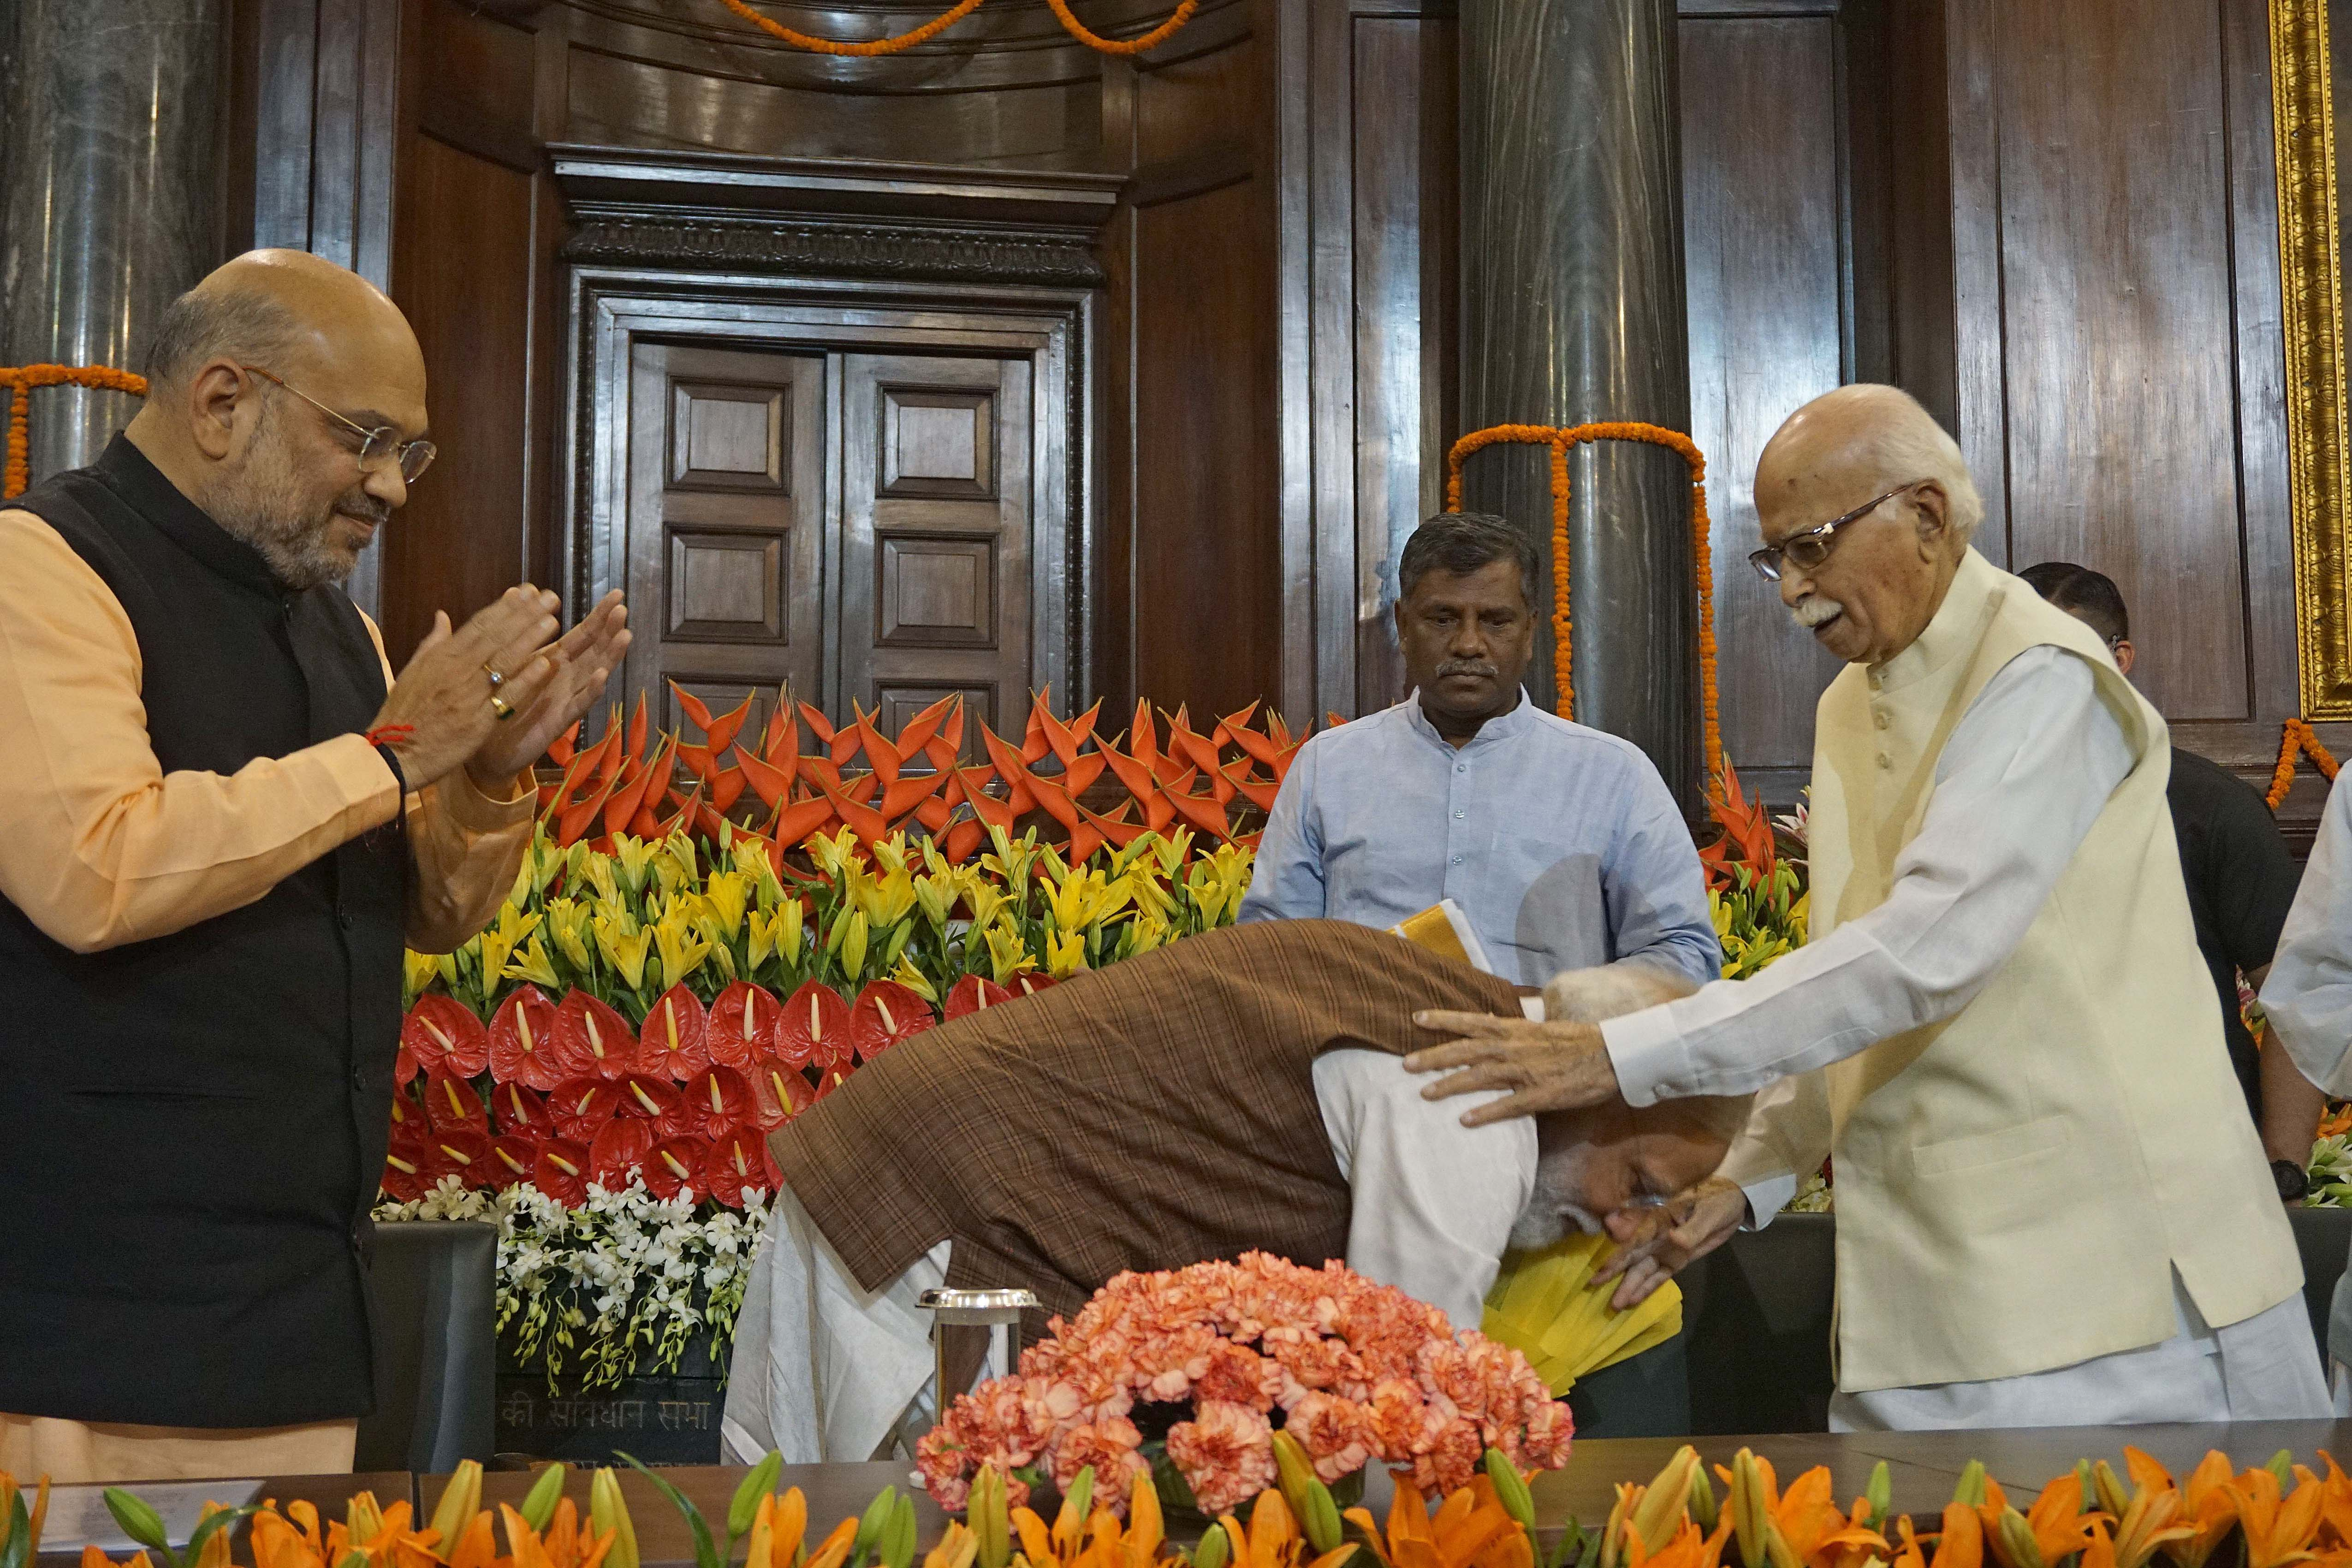 Prime Minister Narendra Modi takes blessing of veteran BJP leader L K Advani on being elected as leader of the NDA Parliamentary party,in New Delhi on Saturday. UNI